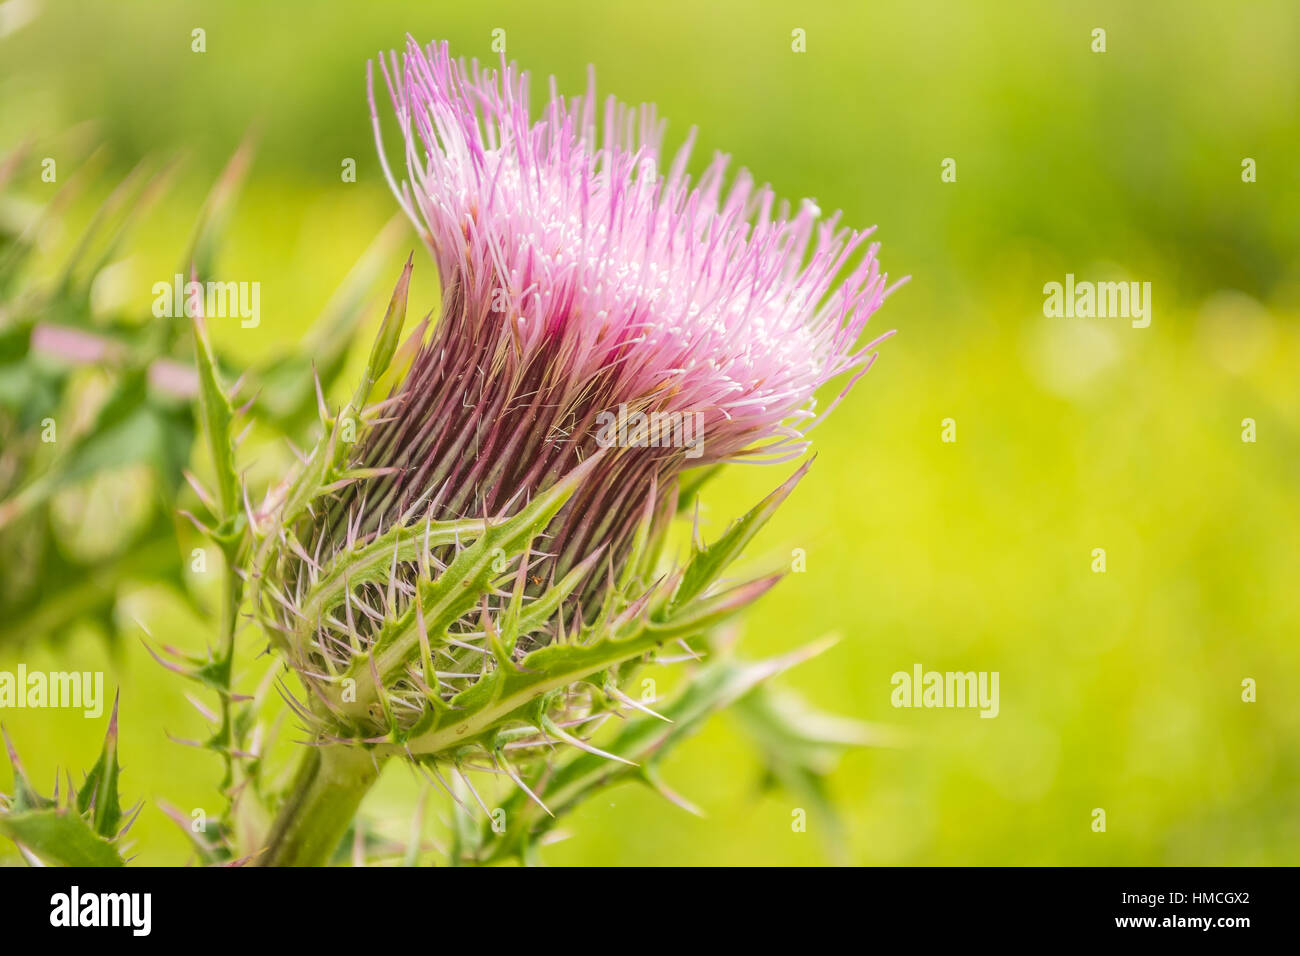 A milk thistle weed blooming in springtime. - Stock Image